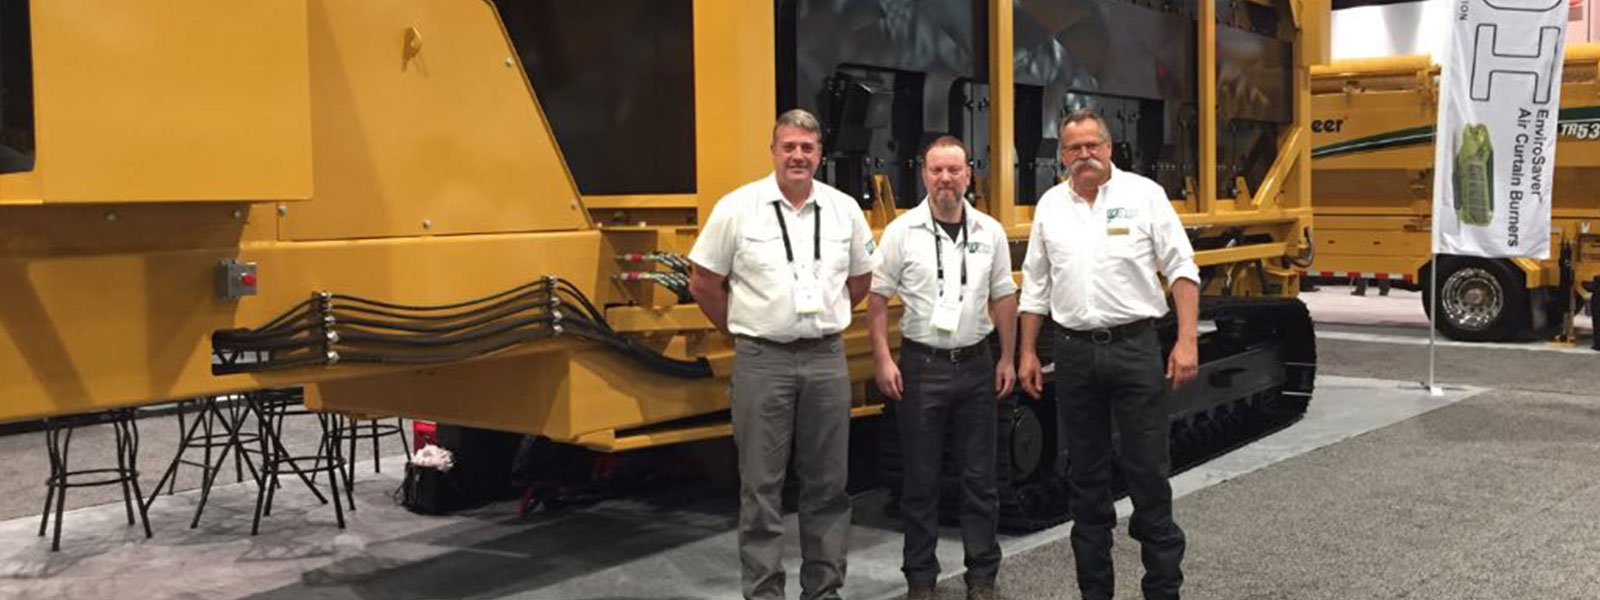 ROI Attends WasteExpo With New State Of The Art Wood Processing Equipment